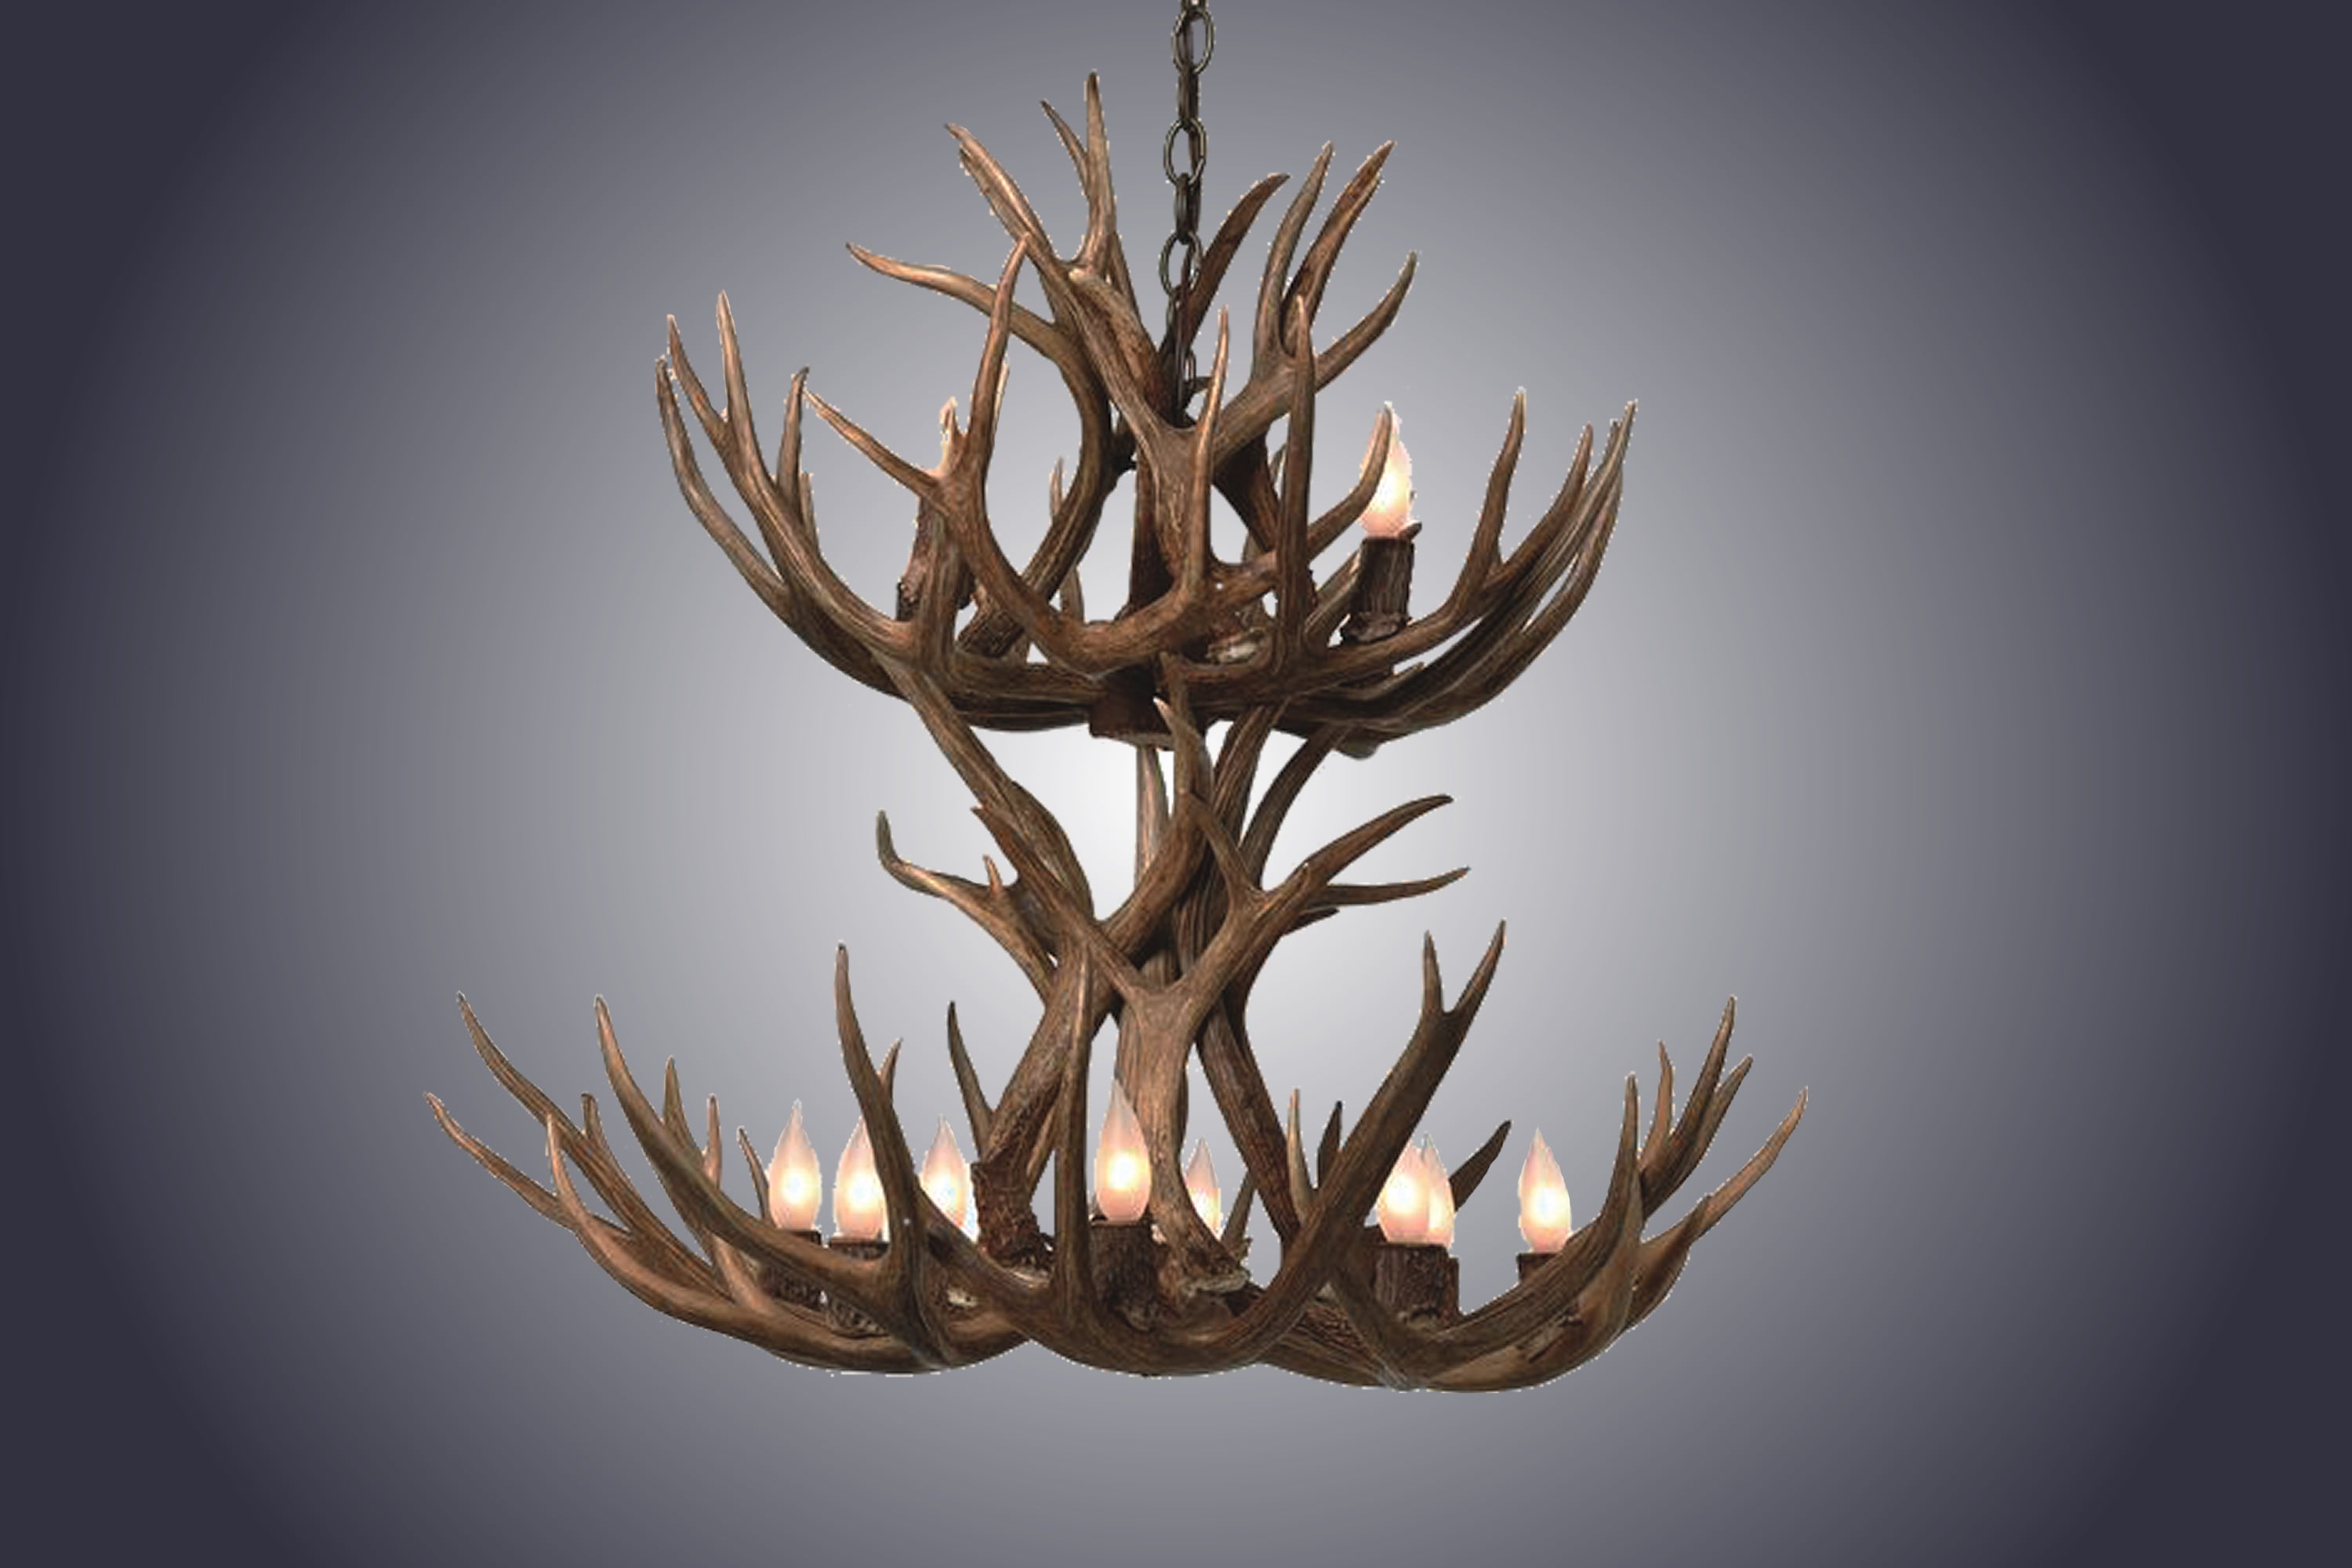 8 light small double tiered mule deer antler chandelier sku 70s 8 light small double tiered mule deer antler chandelier sku 70s antlerworx aloadofball Images